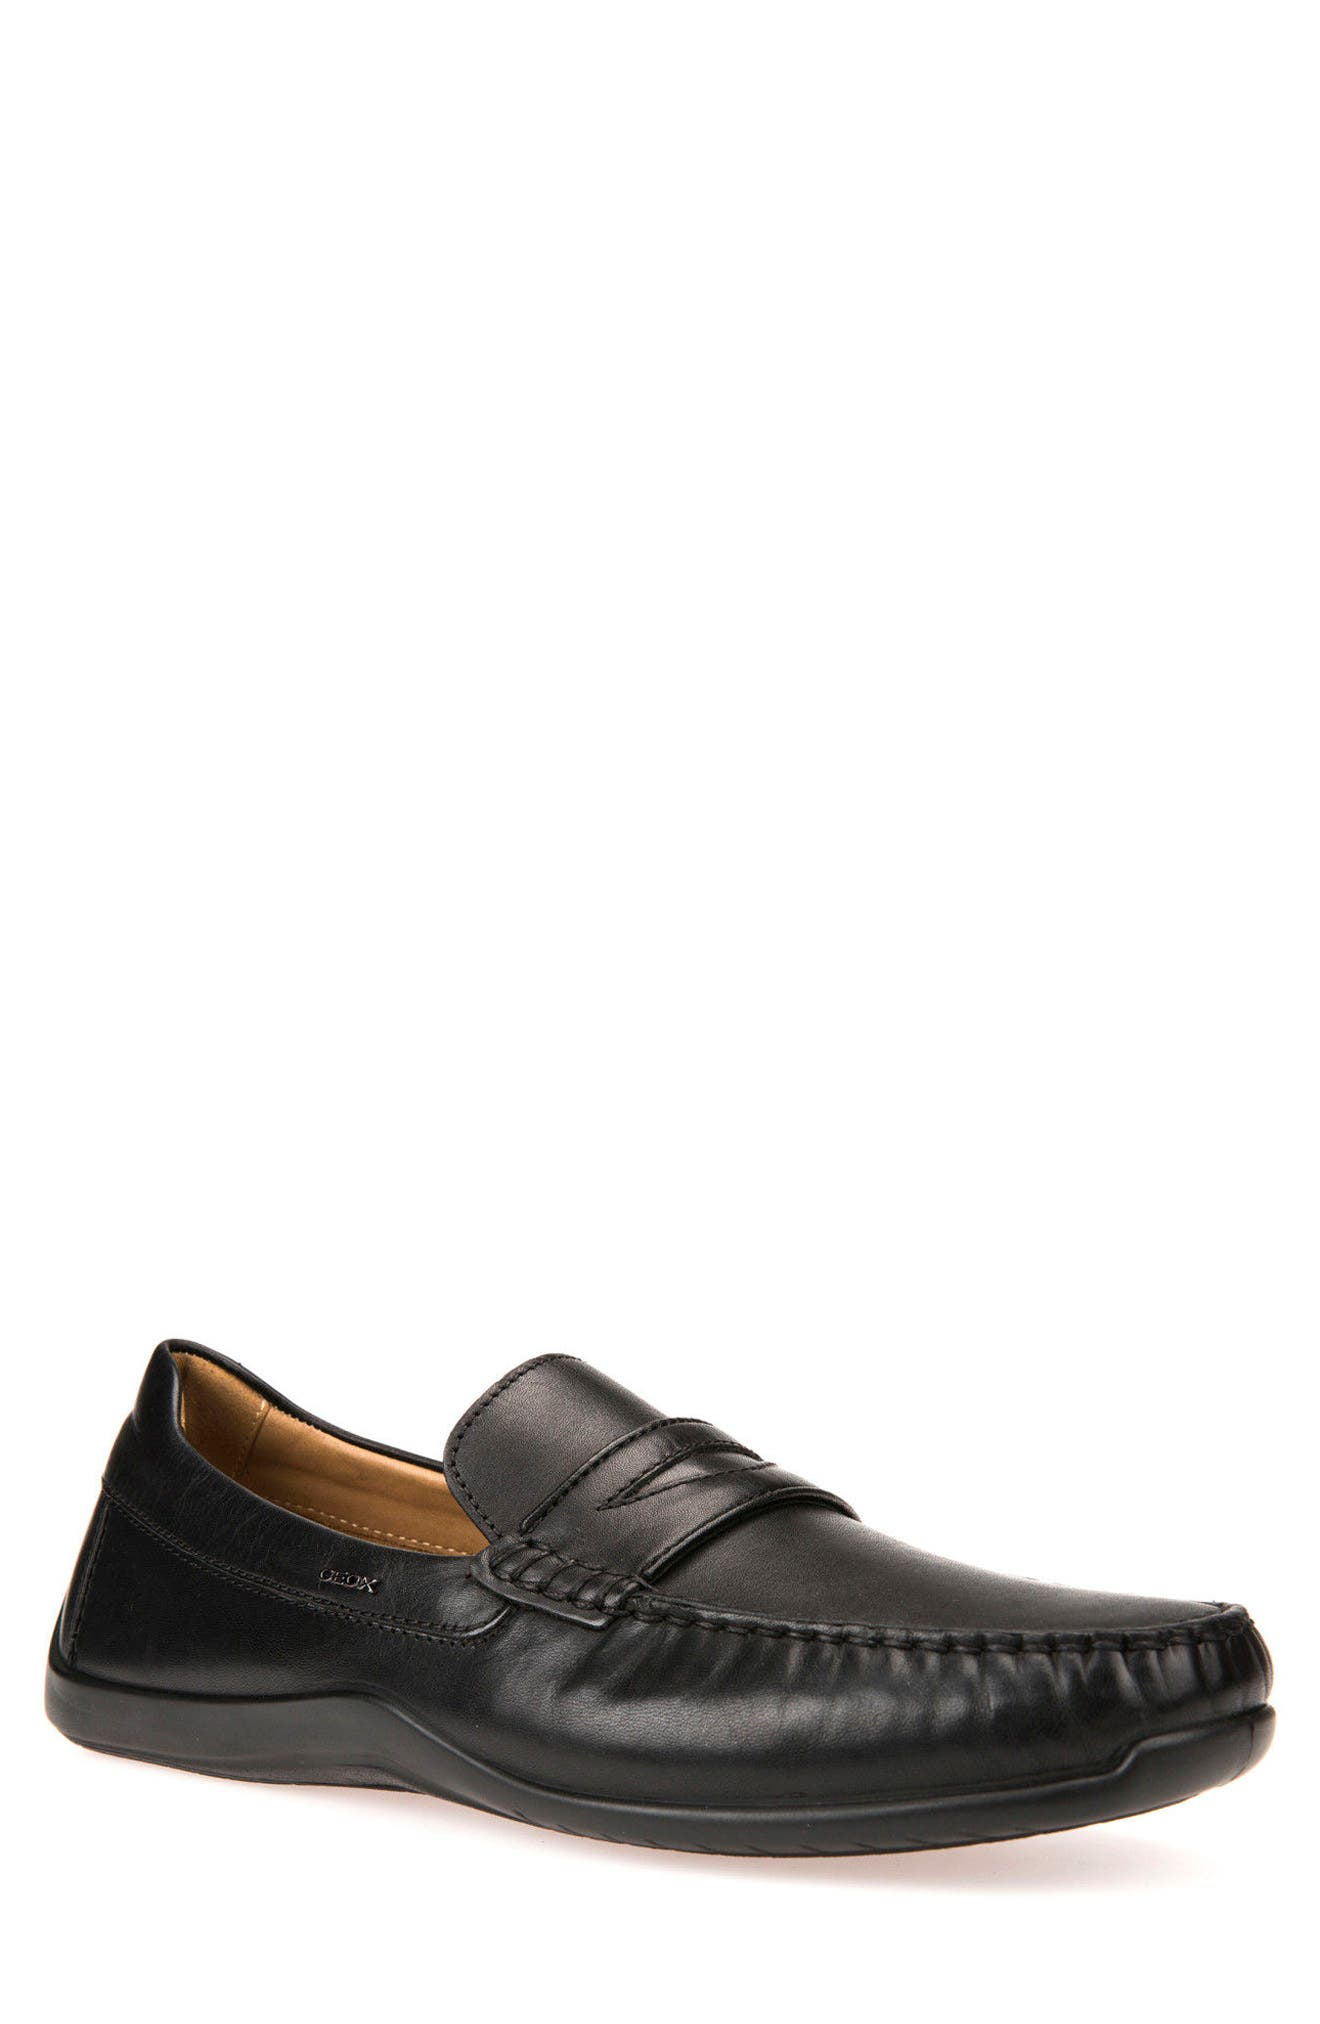 Xense Penny Loafer,                         Main,                         color, 001